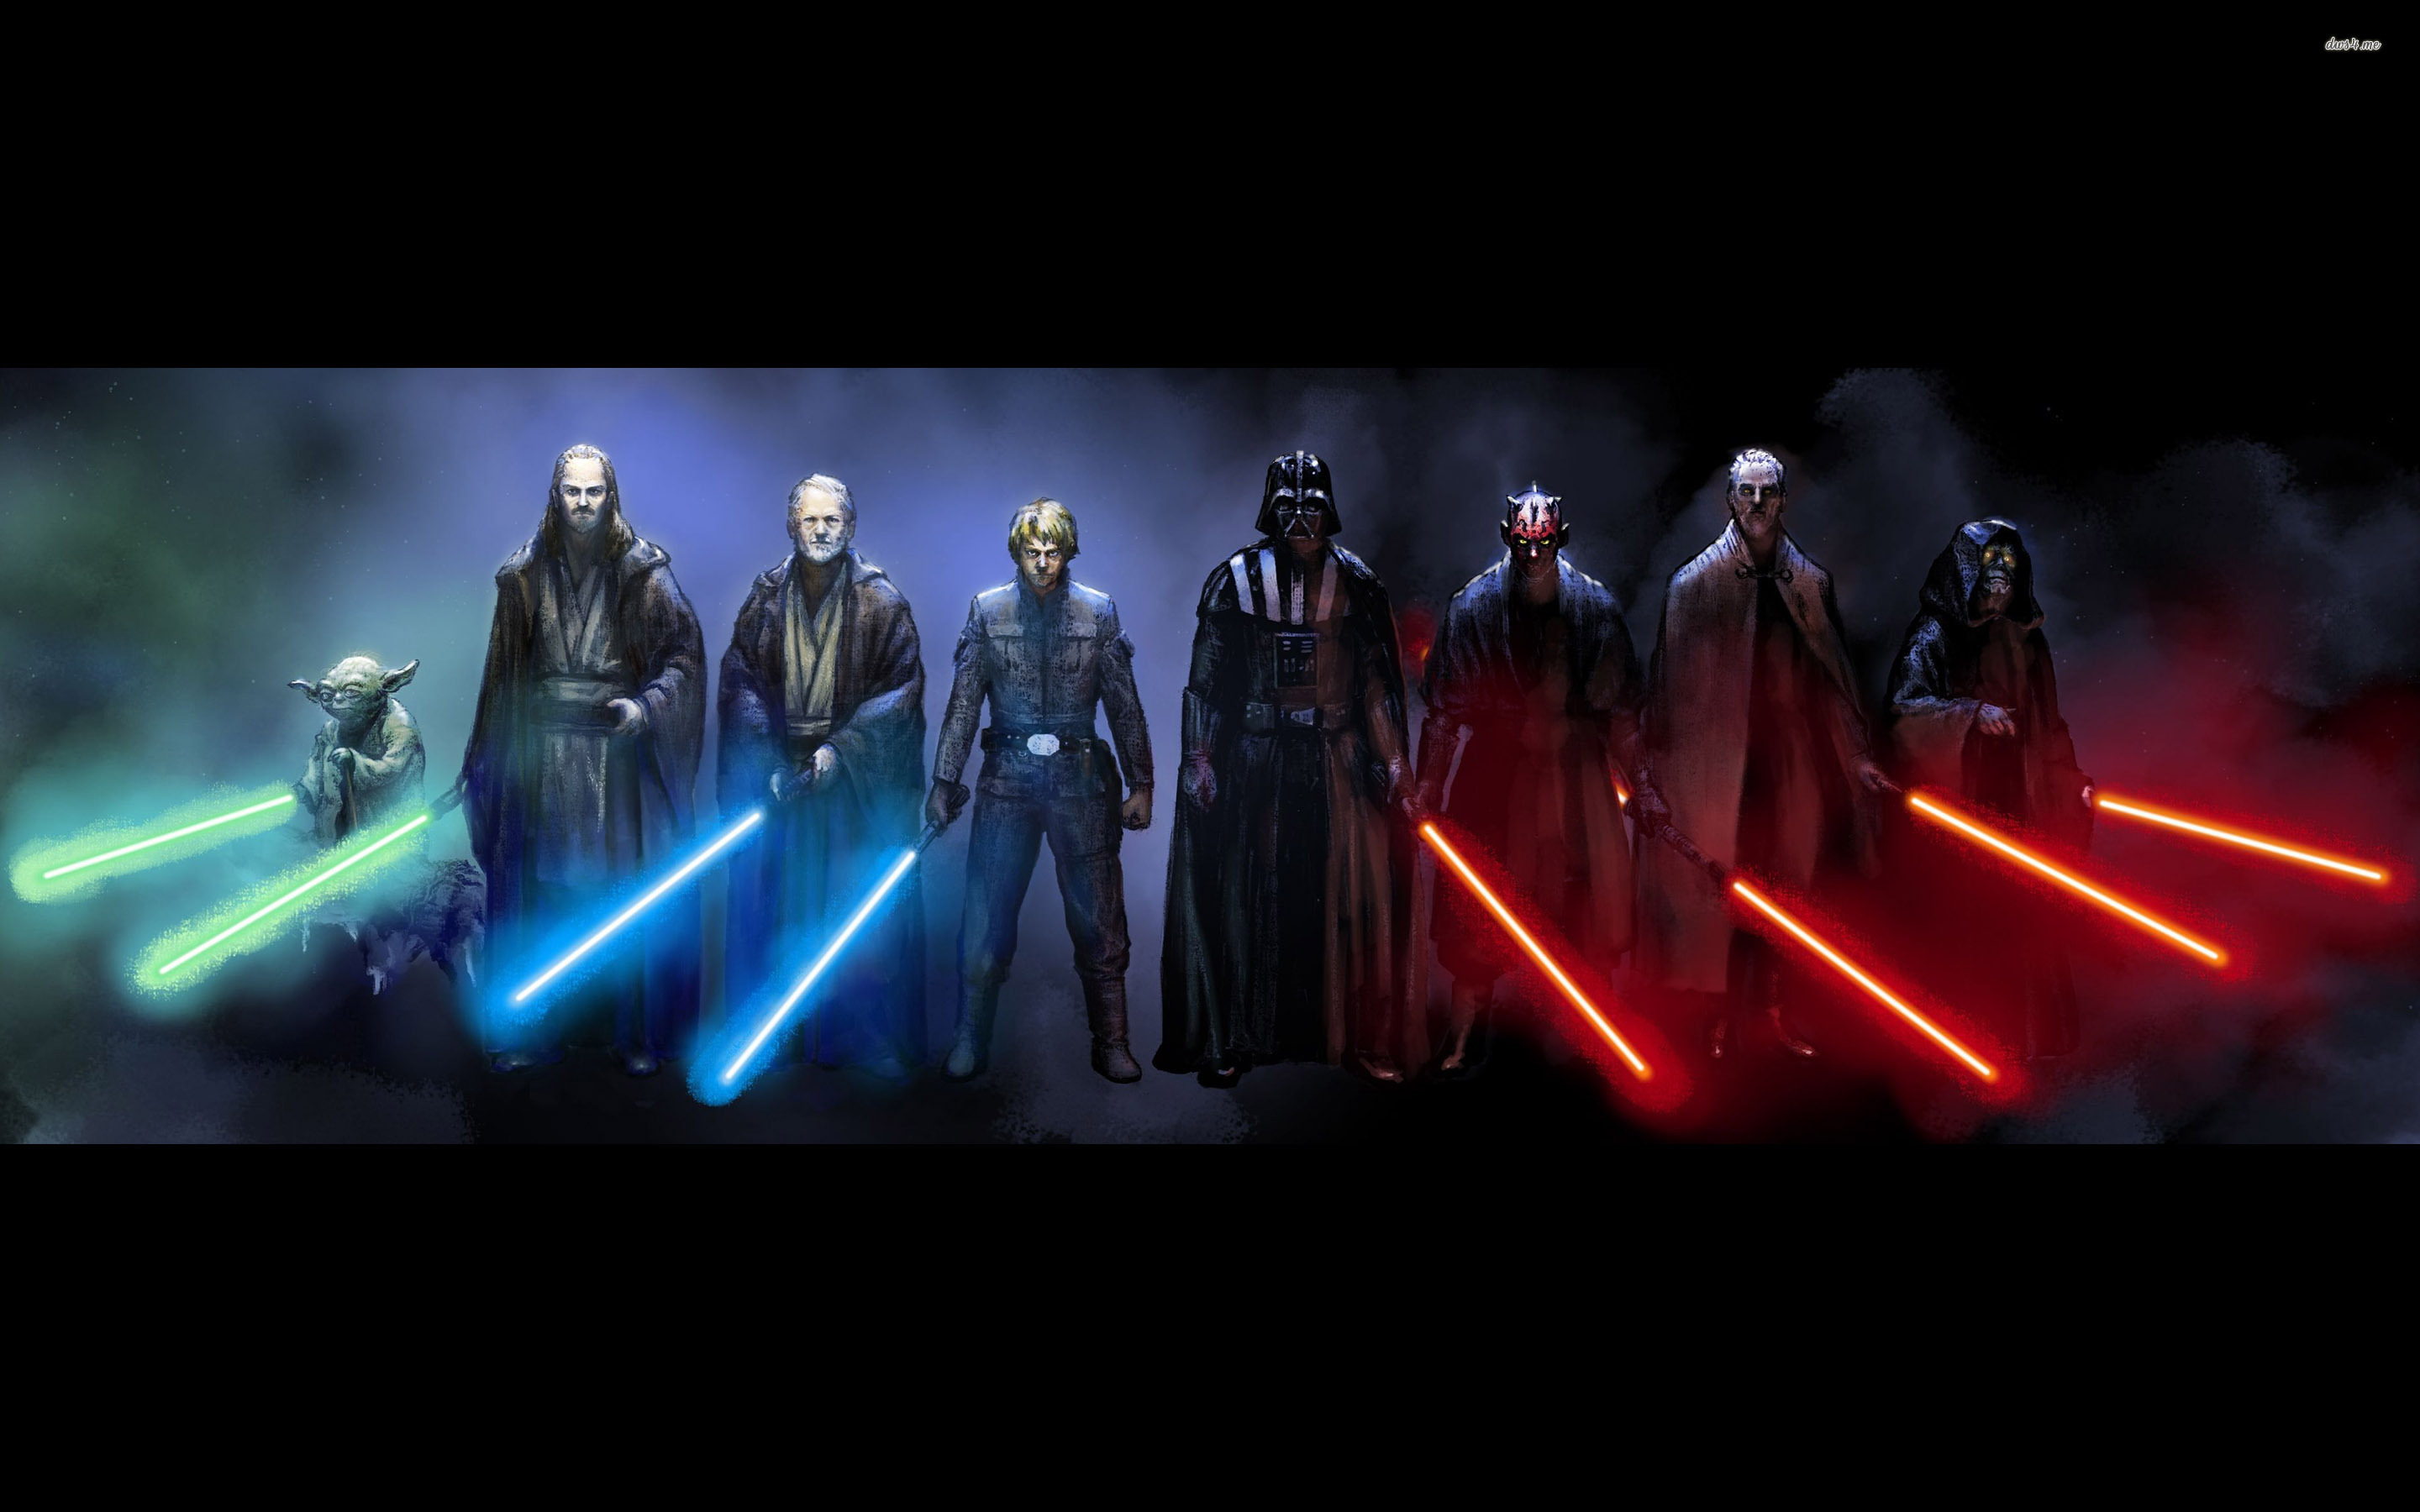 47 Star Wars Jedi Wallpaper Hd On Wallpapersafari